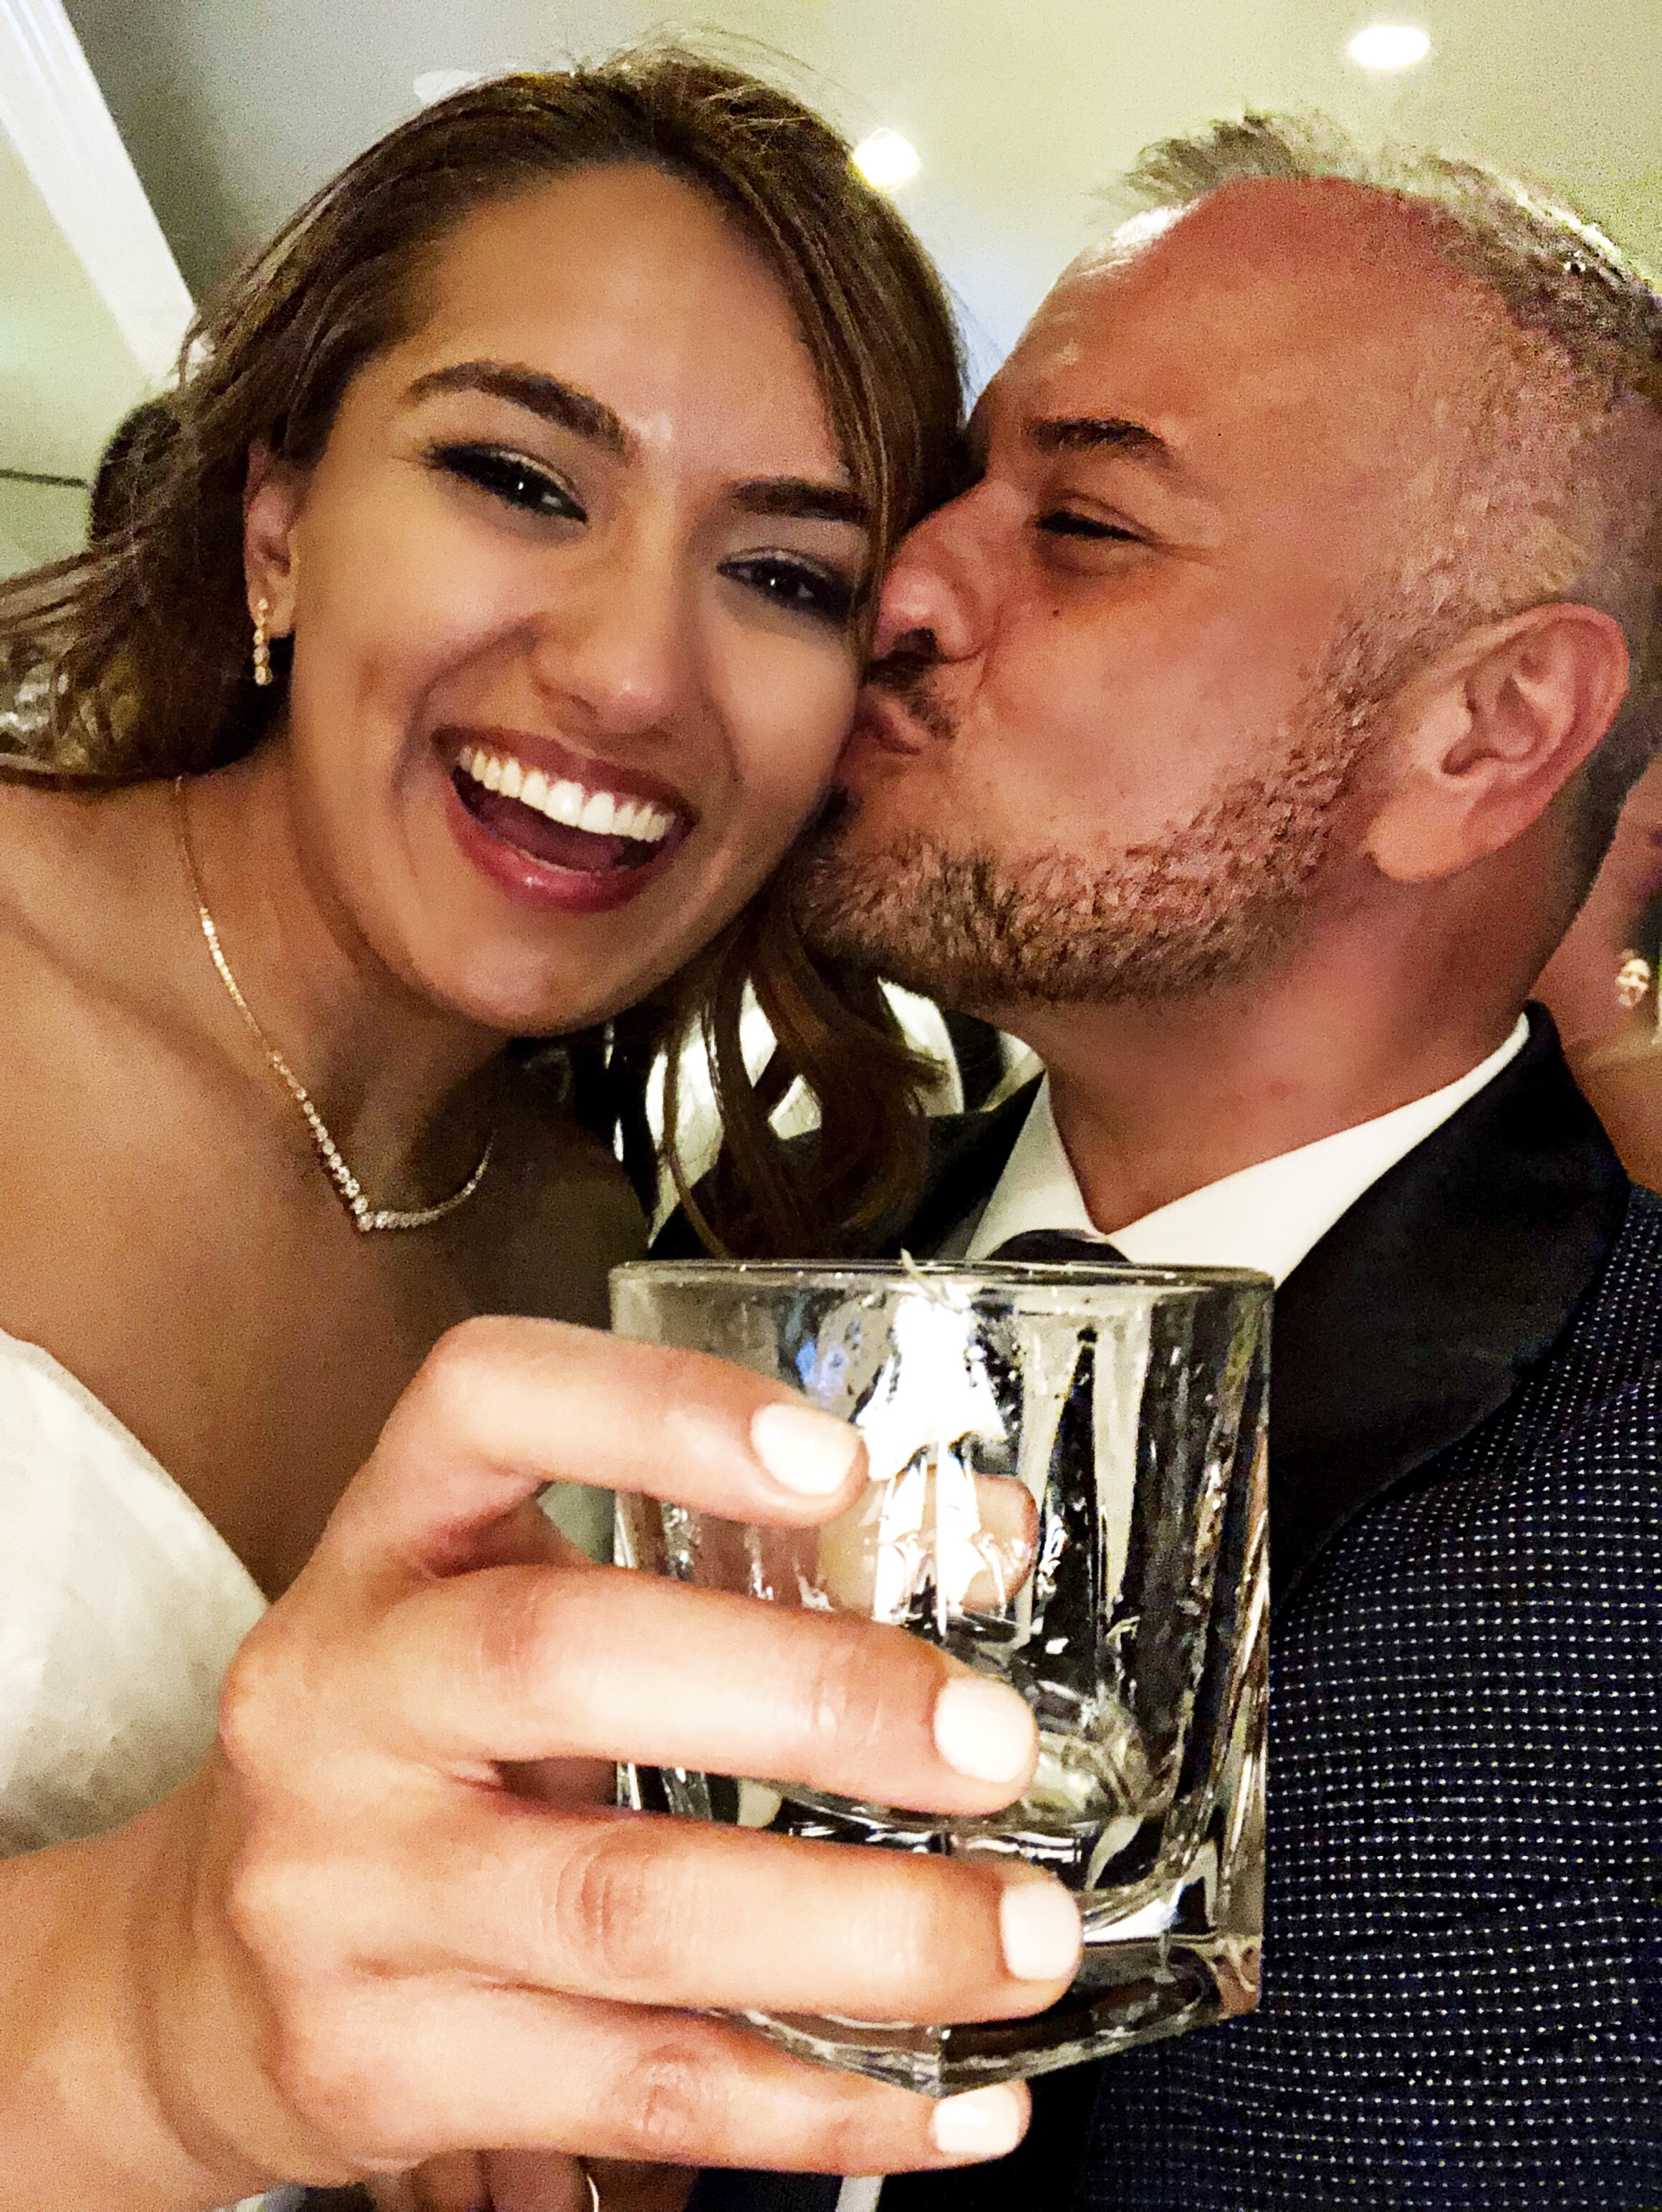 Kissing the beautiful bride! Cheers!